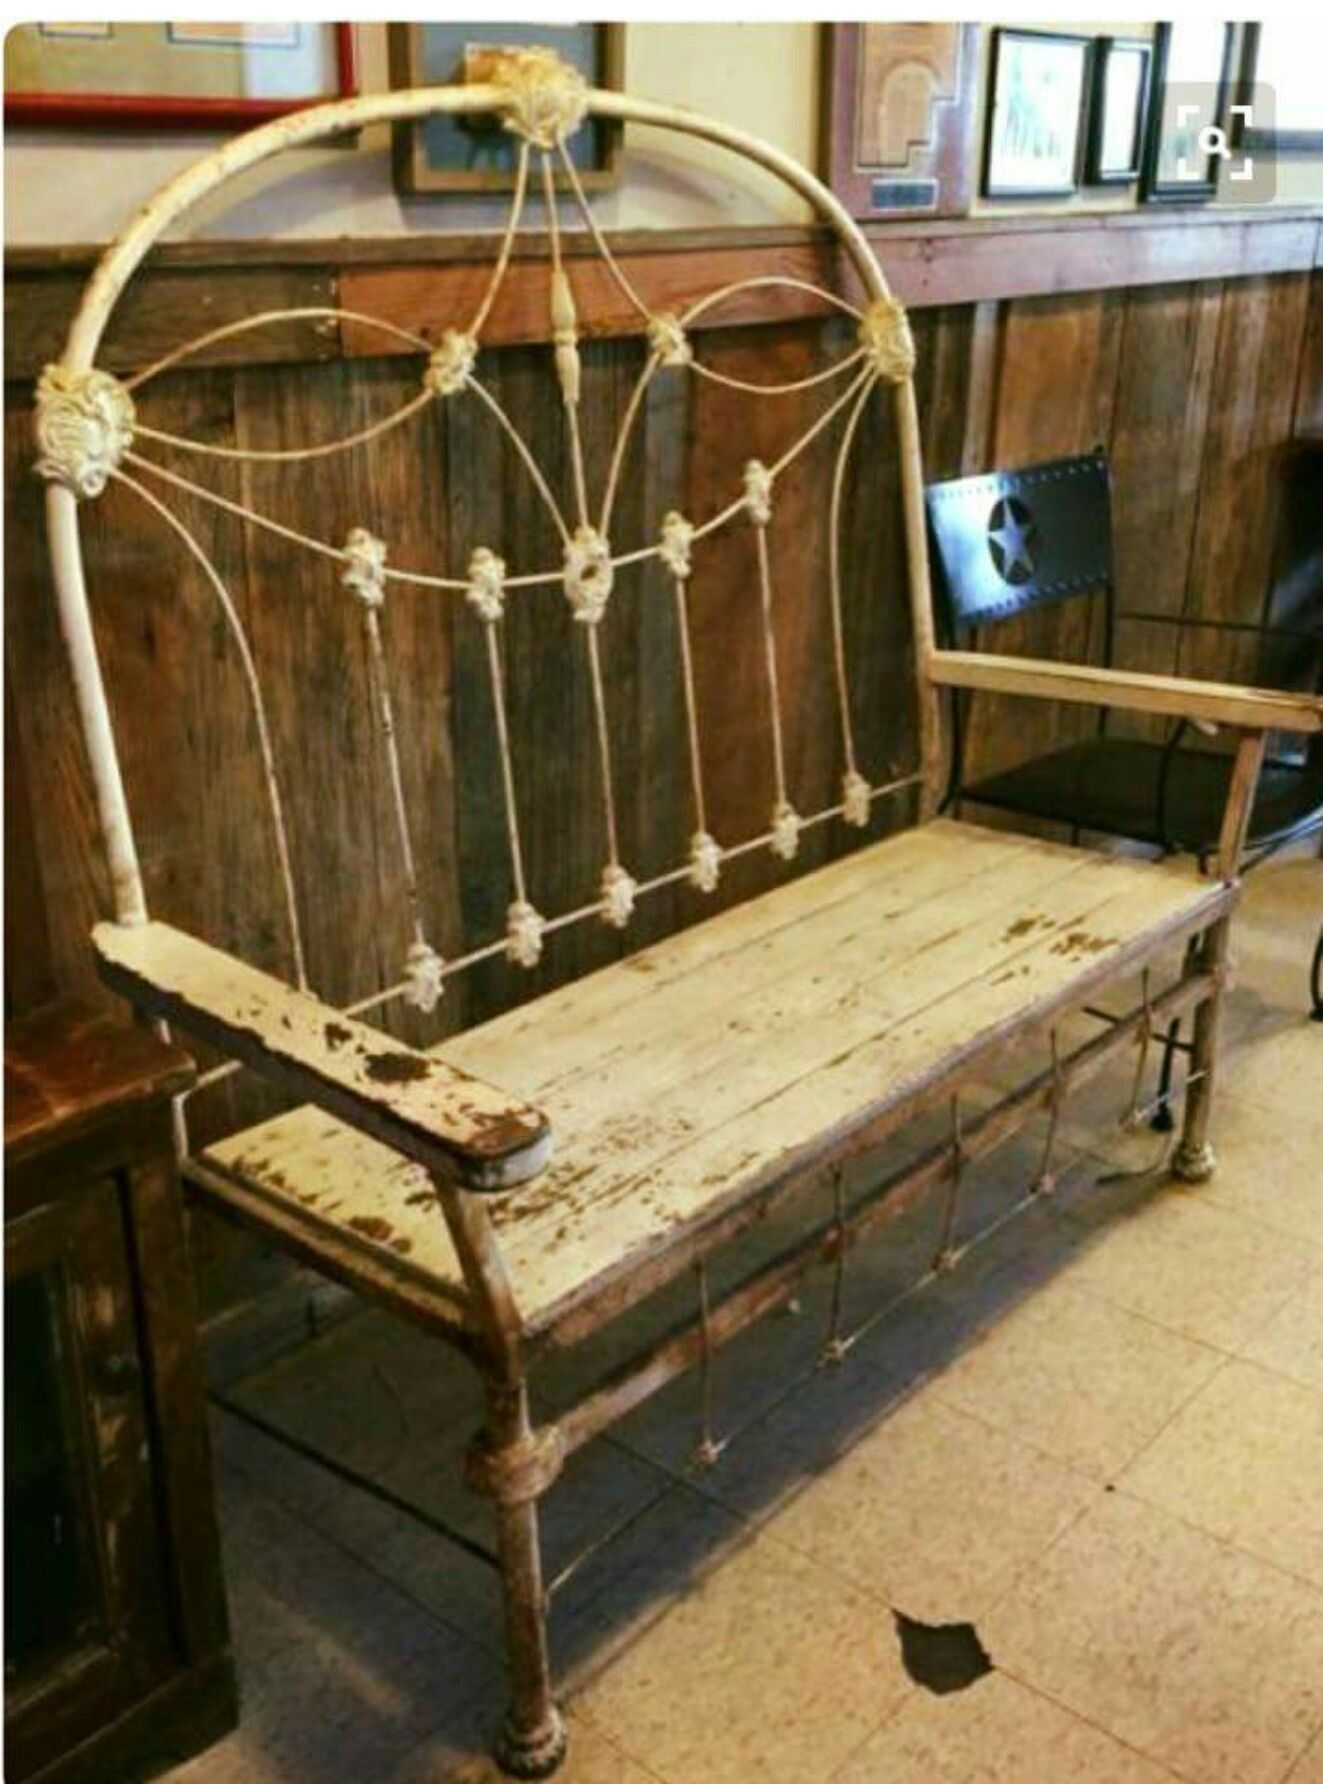 Iron Bed & Wood Made Into A Bench Porch Idea